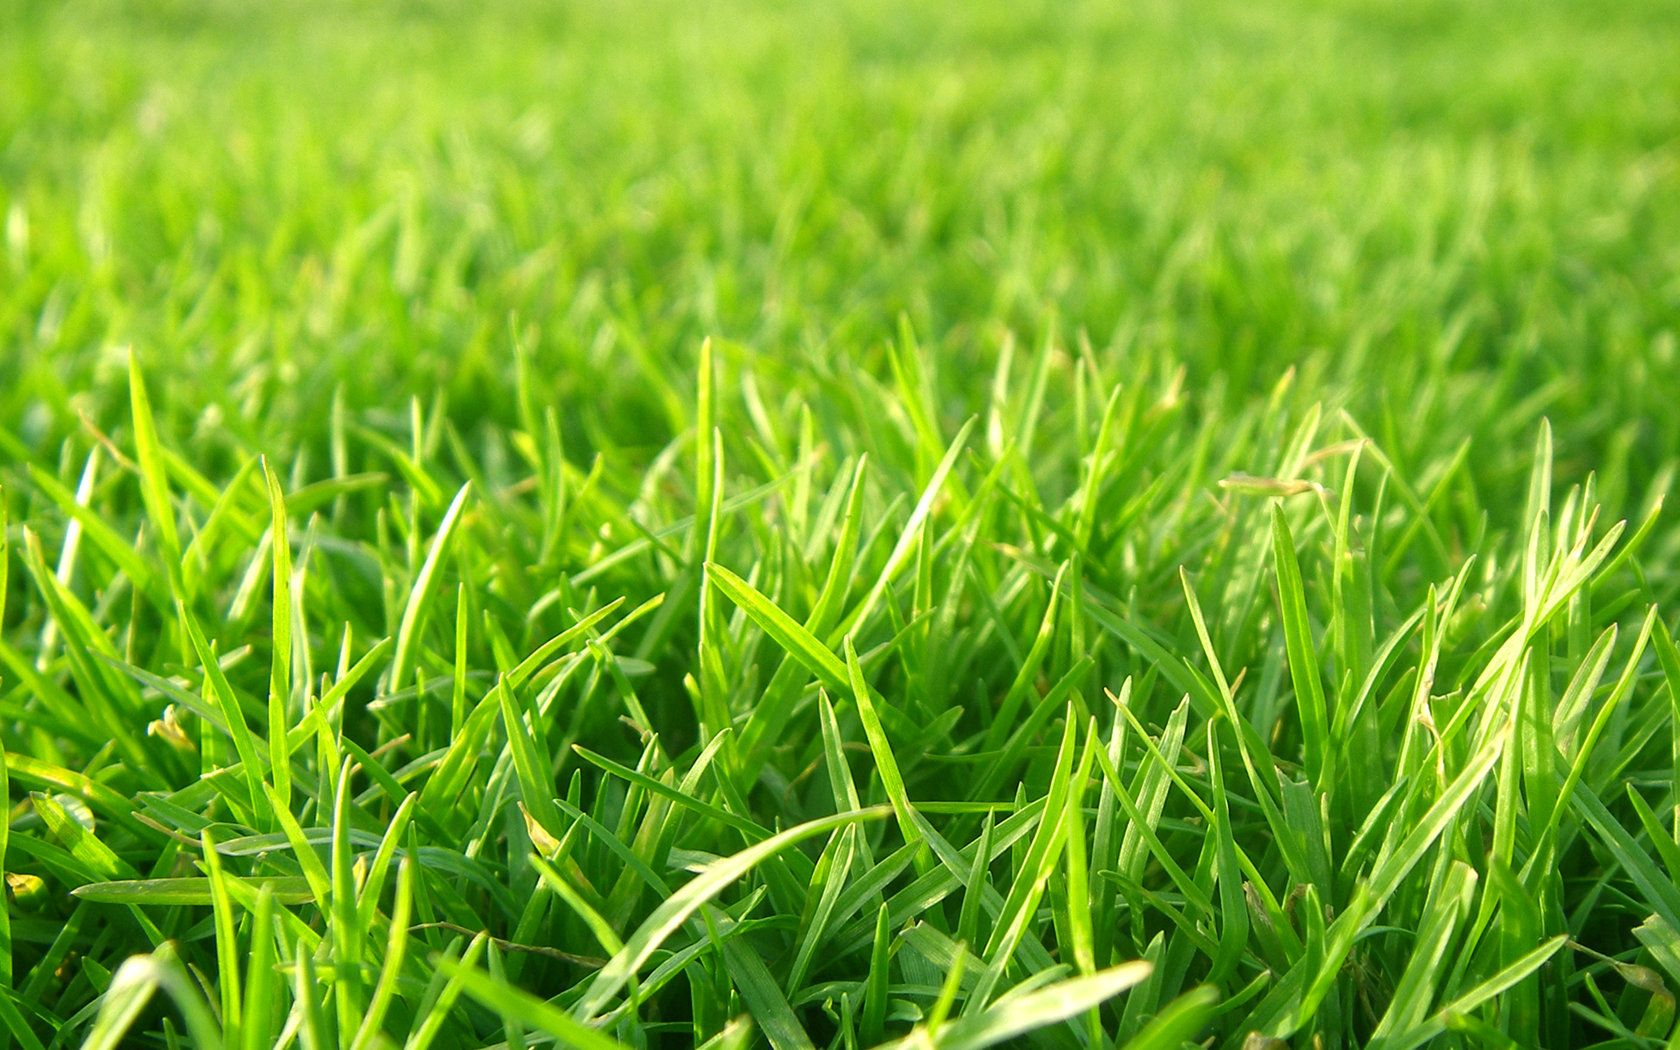 Grass Looks Sharp But Can Be Very Soft Implied